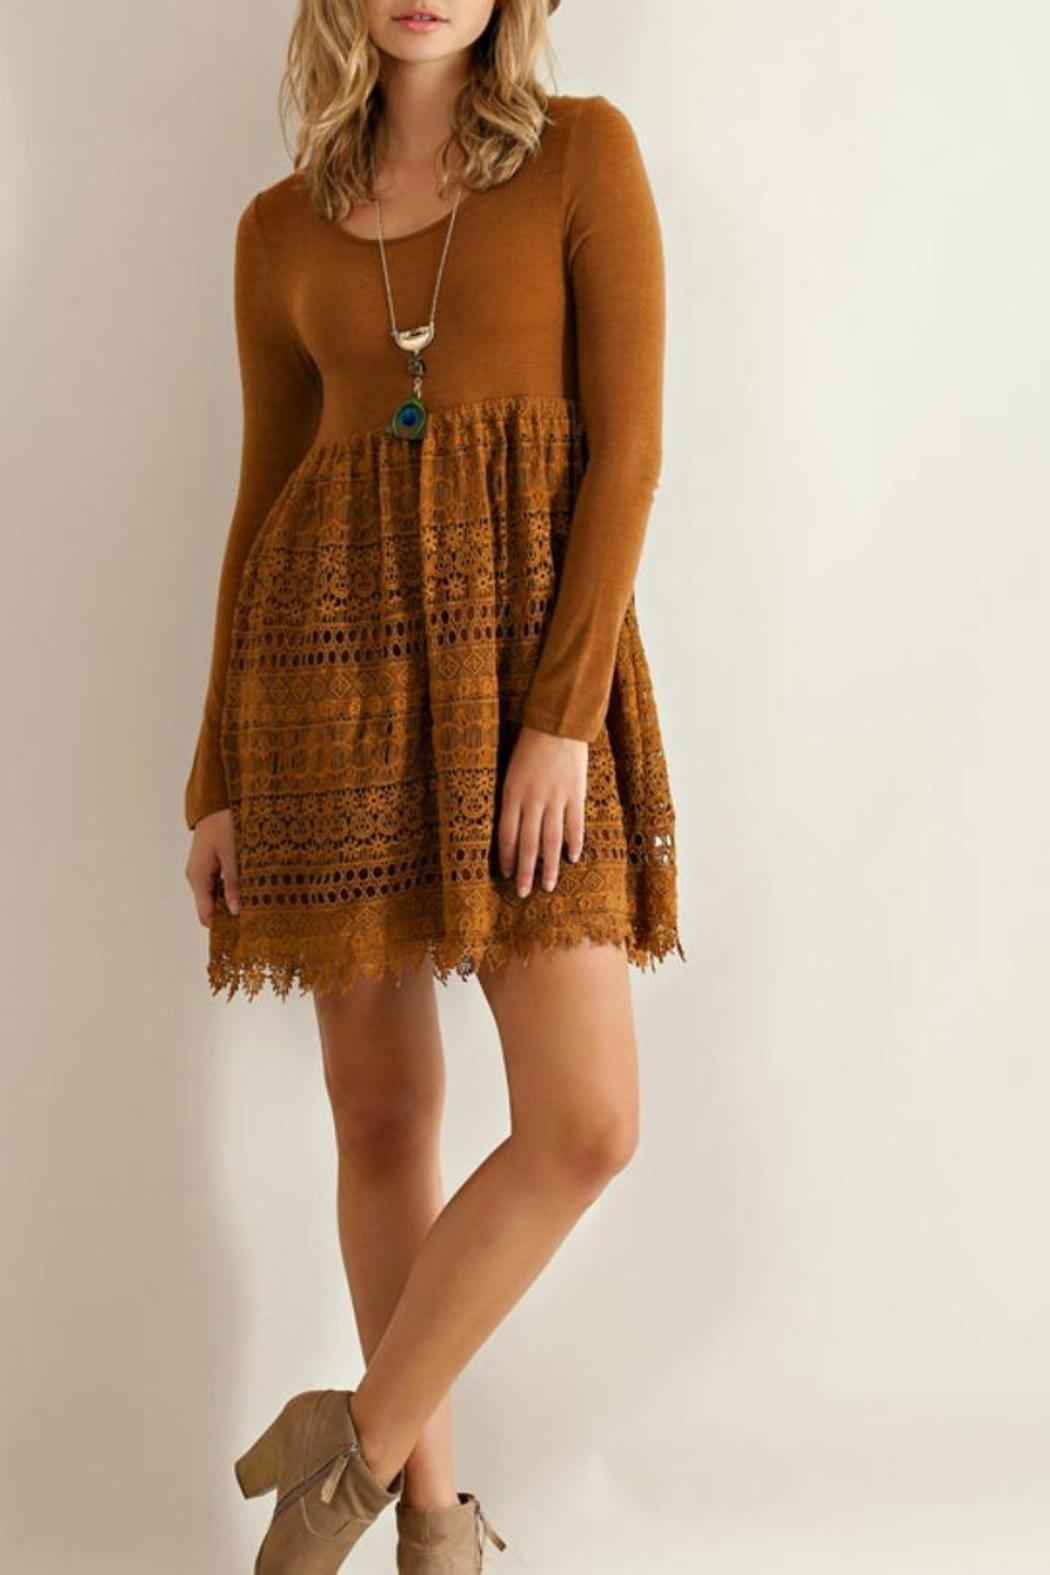 1cddf0934706 Entro Winter Lace Dress from Mississippi by Exit 16 - Diamondhead ...